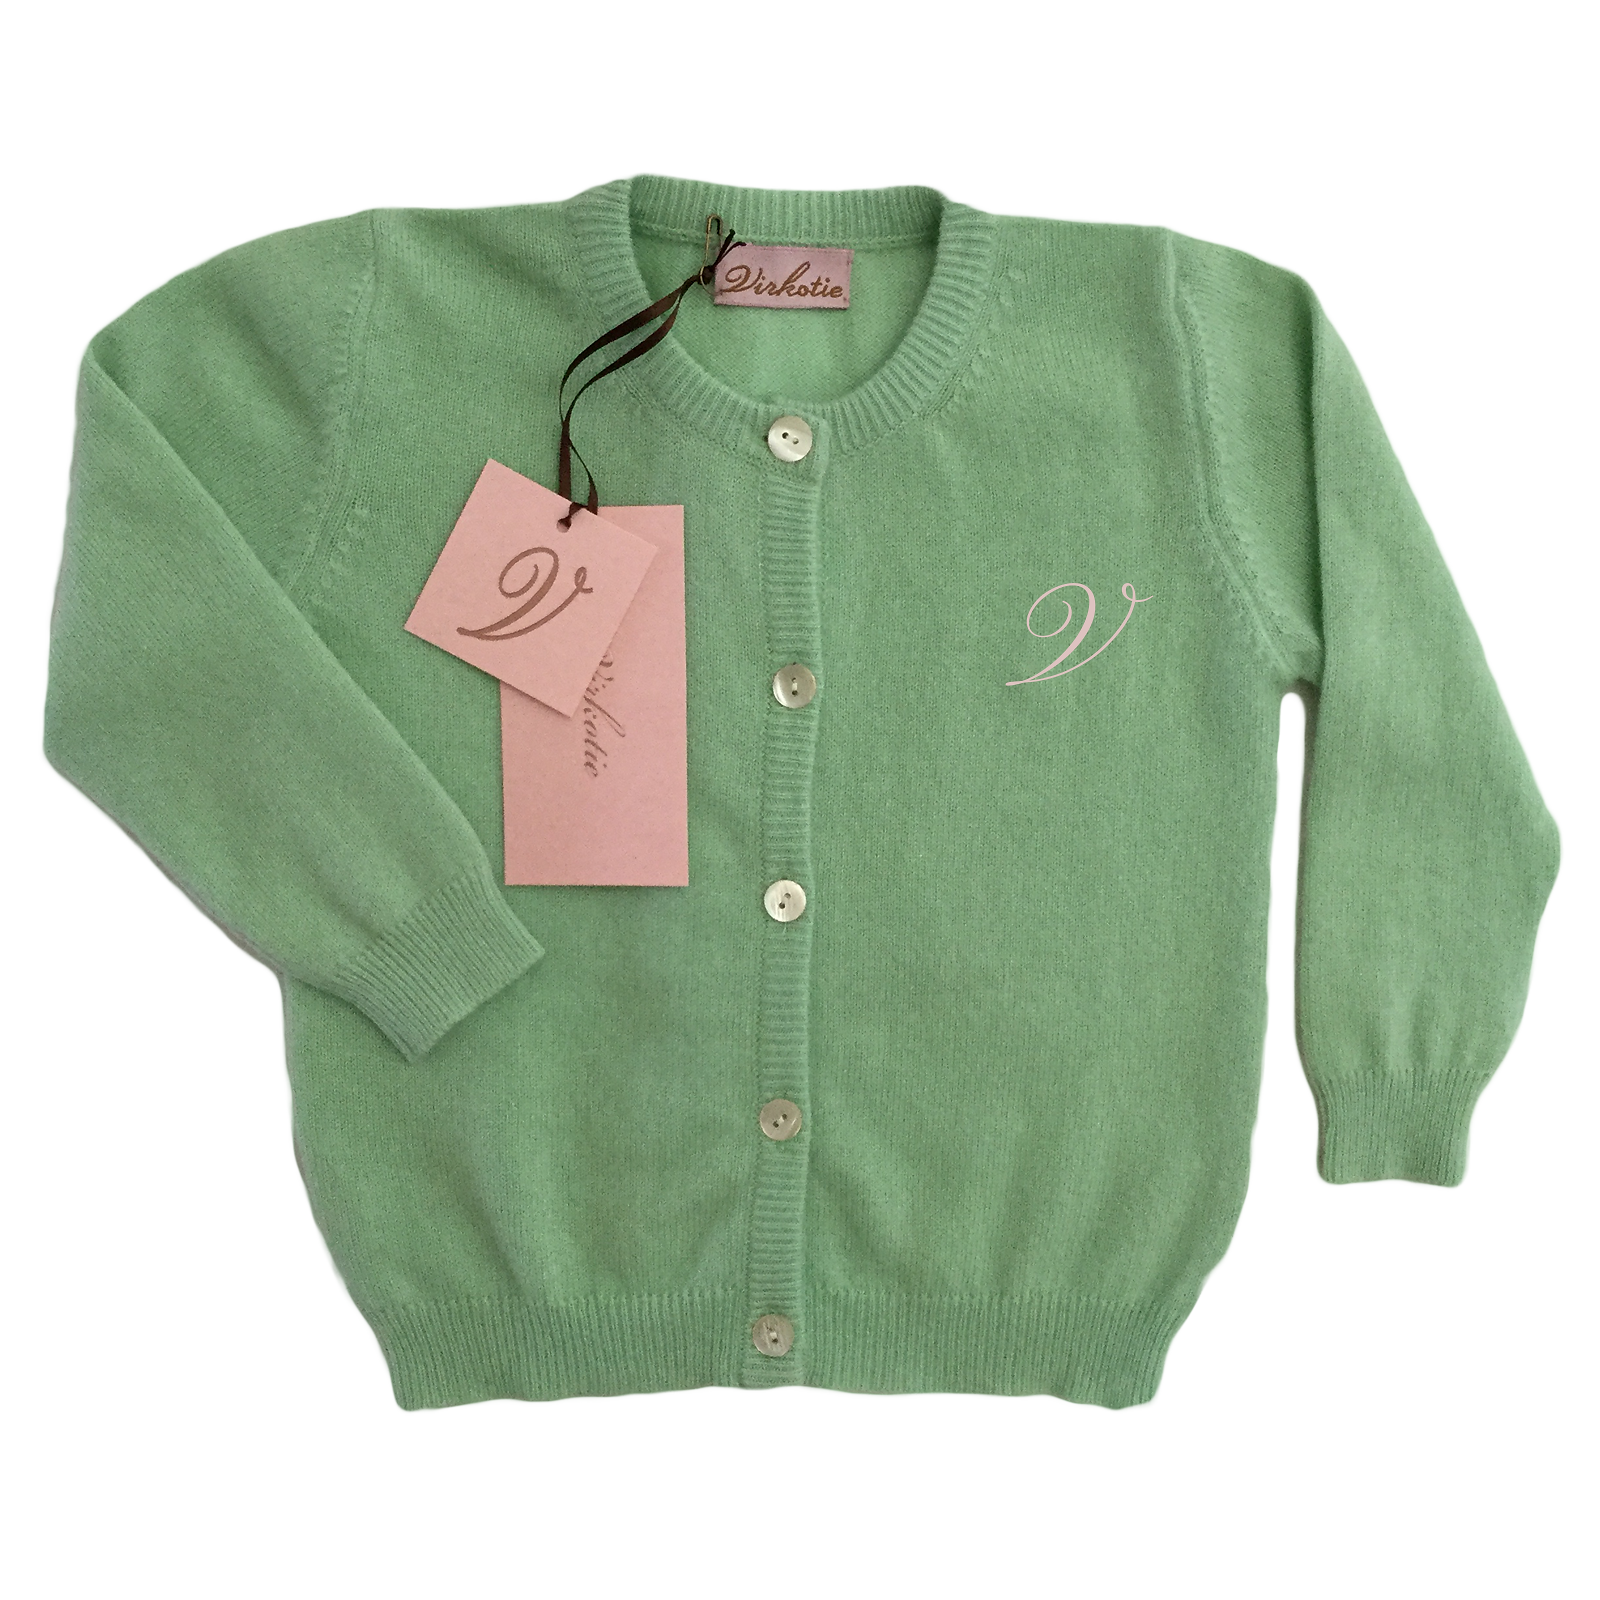 Cashmere Children Kids Baby Low Prices High Quality VIRKOTIE ...